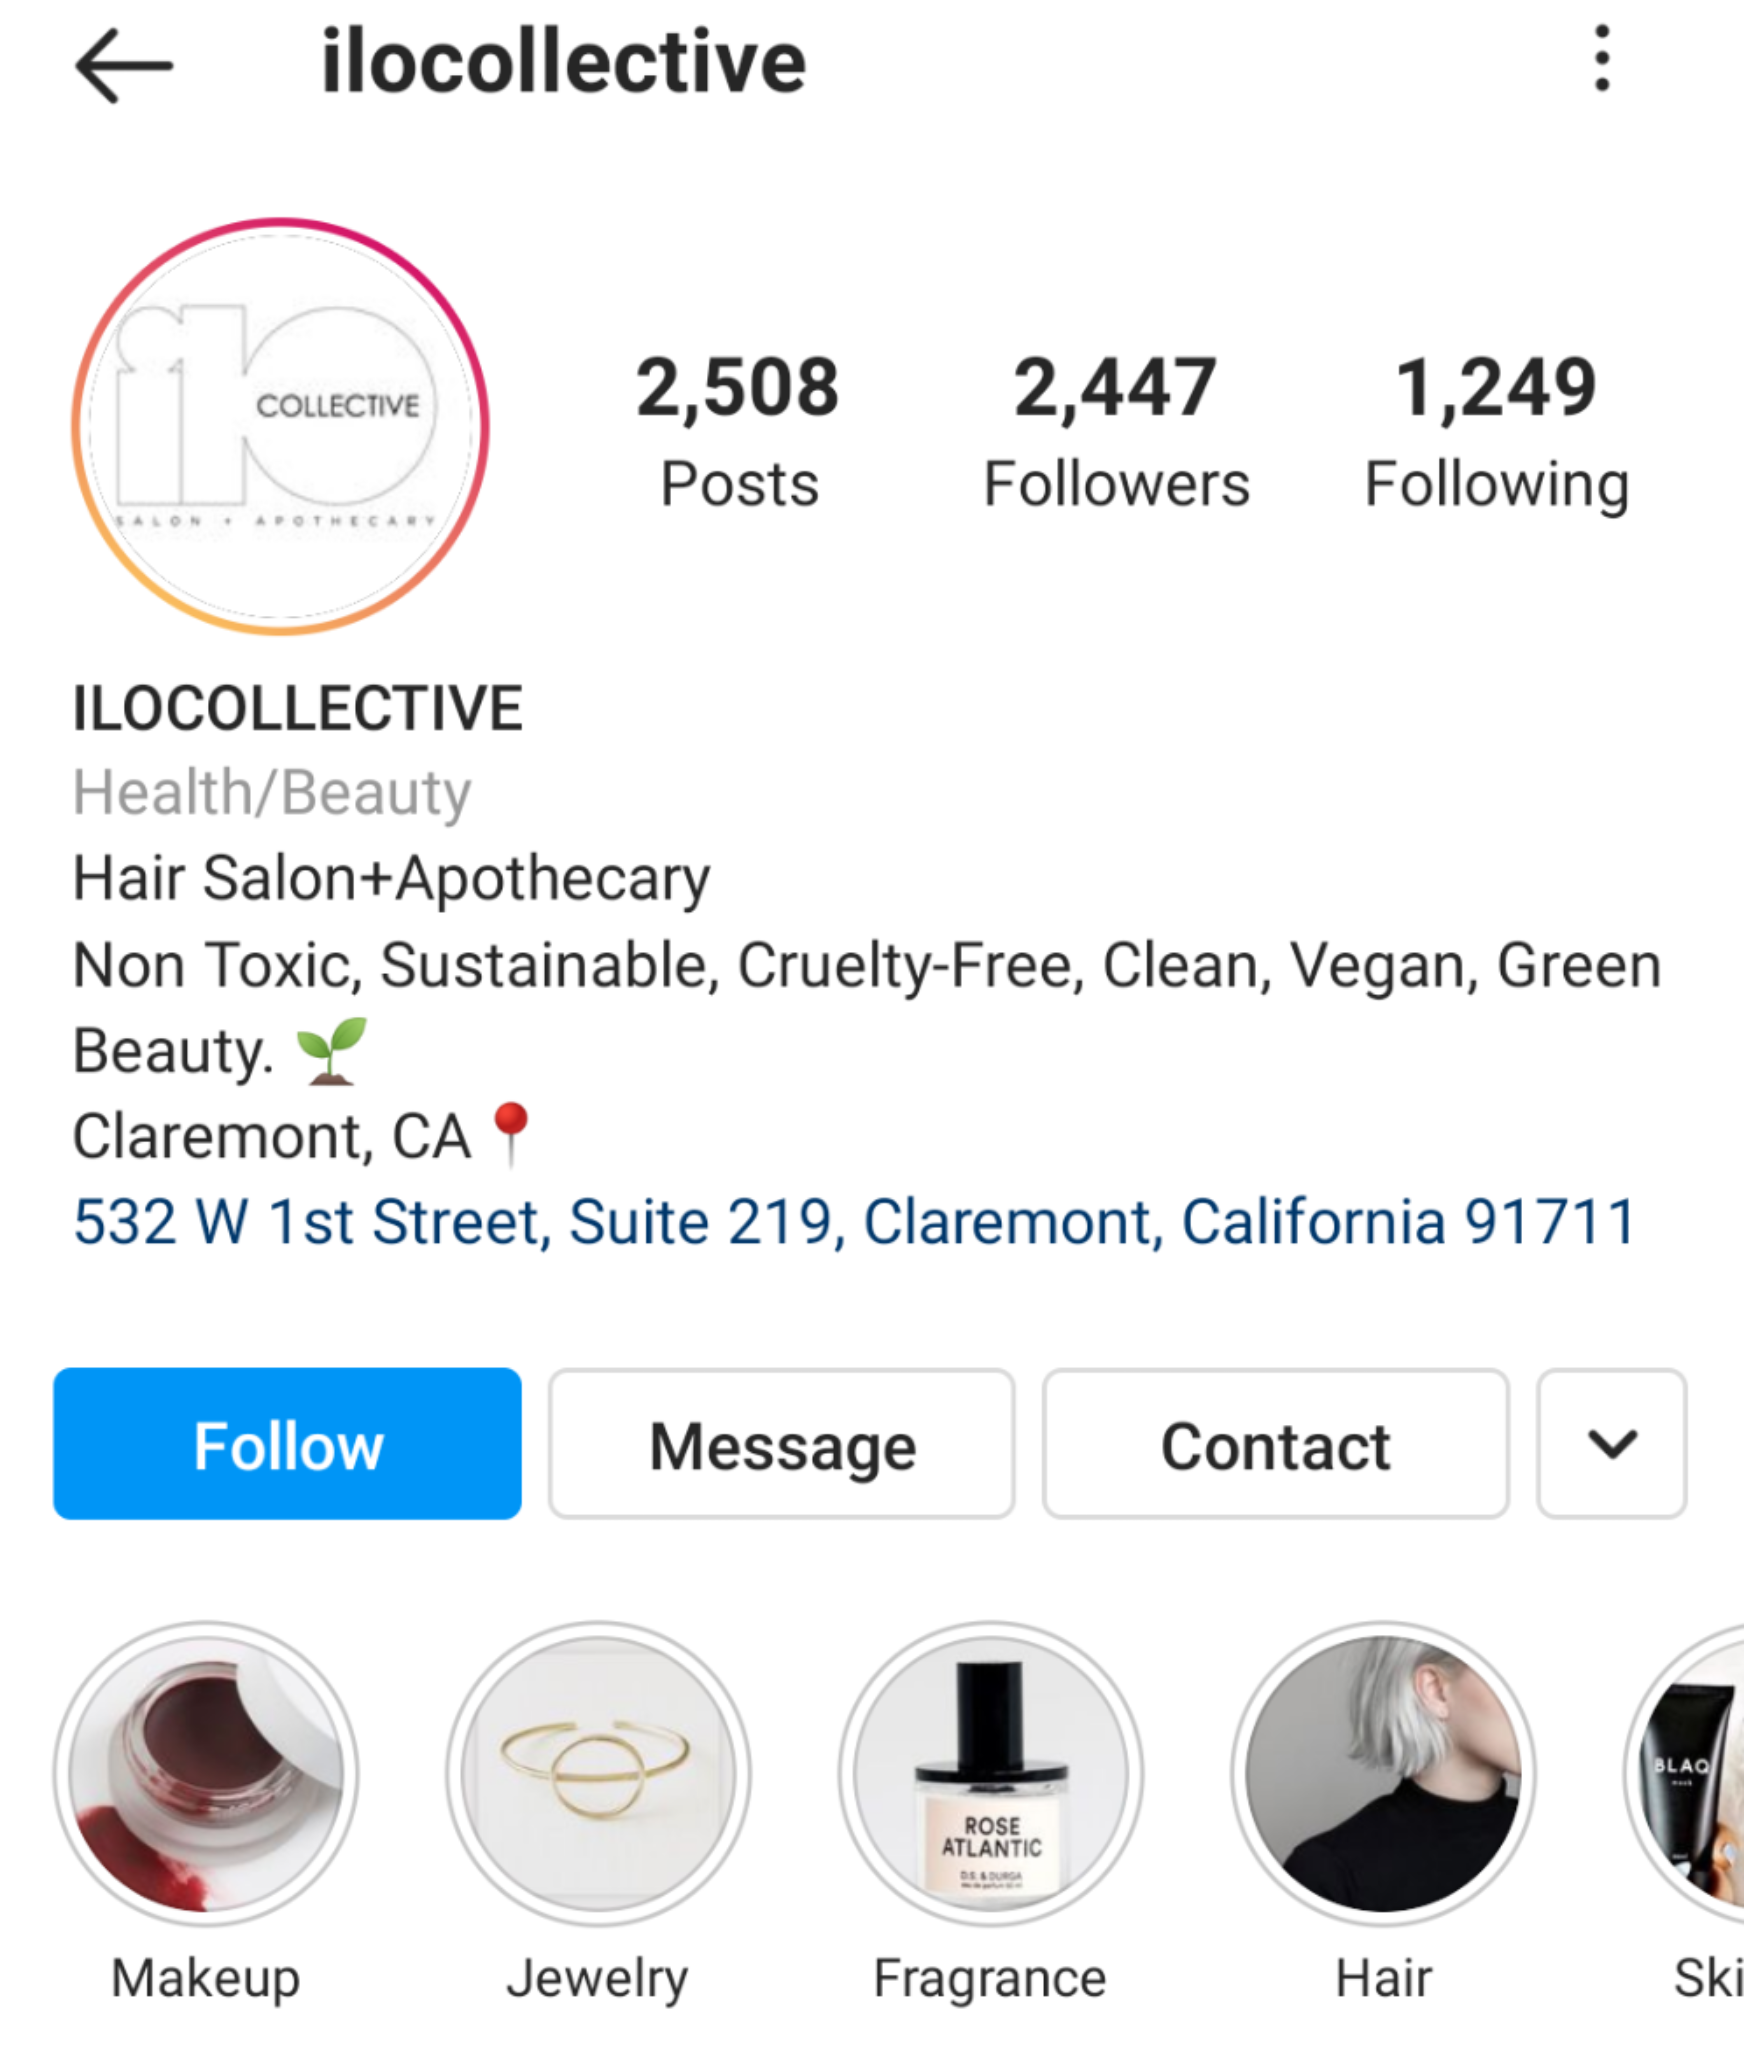 An example of using keywords in an Instagram bio